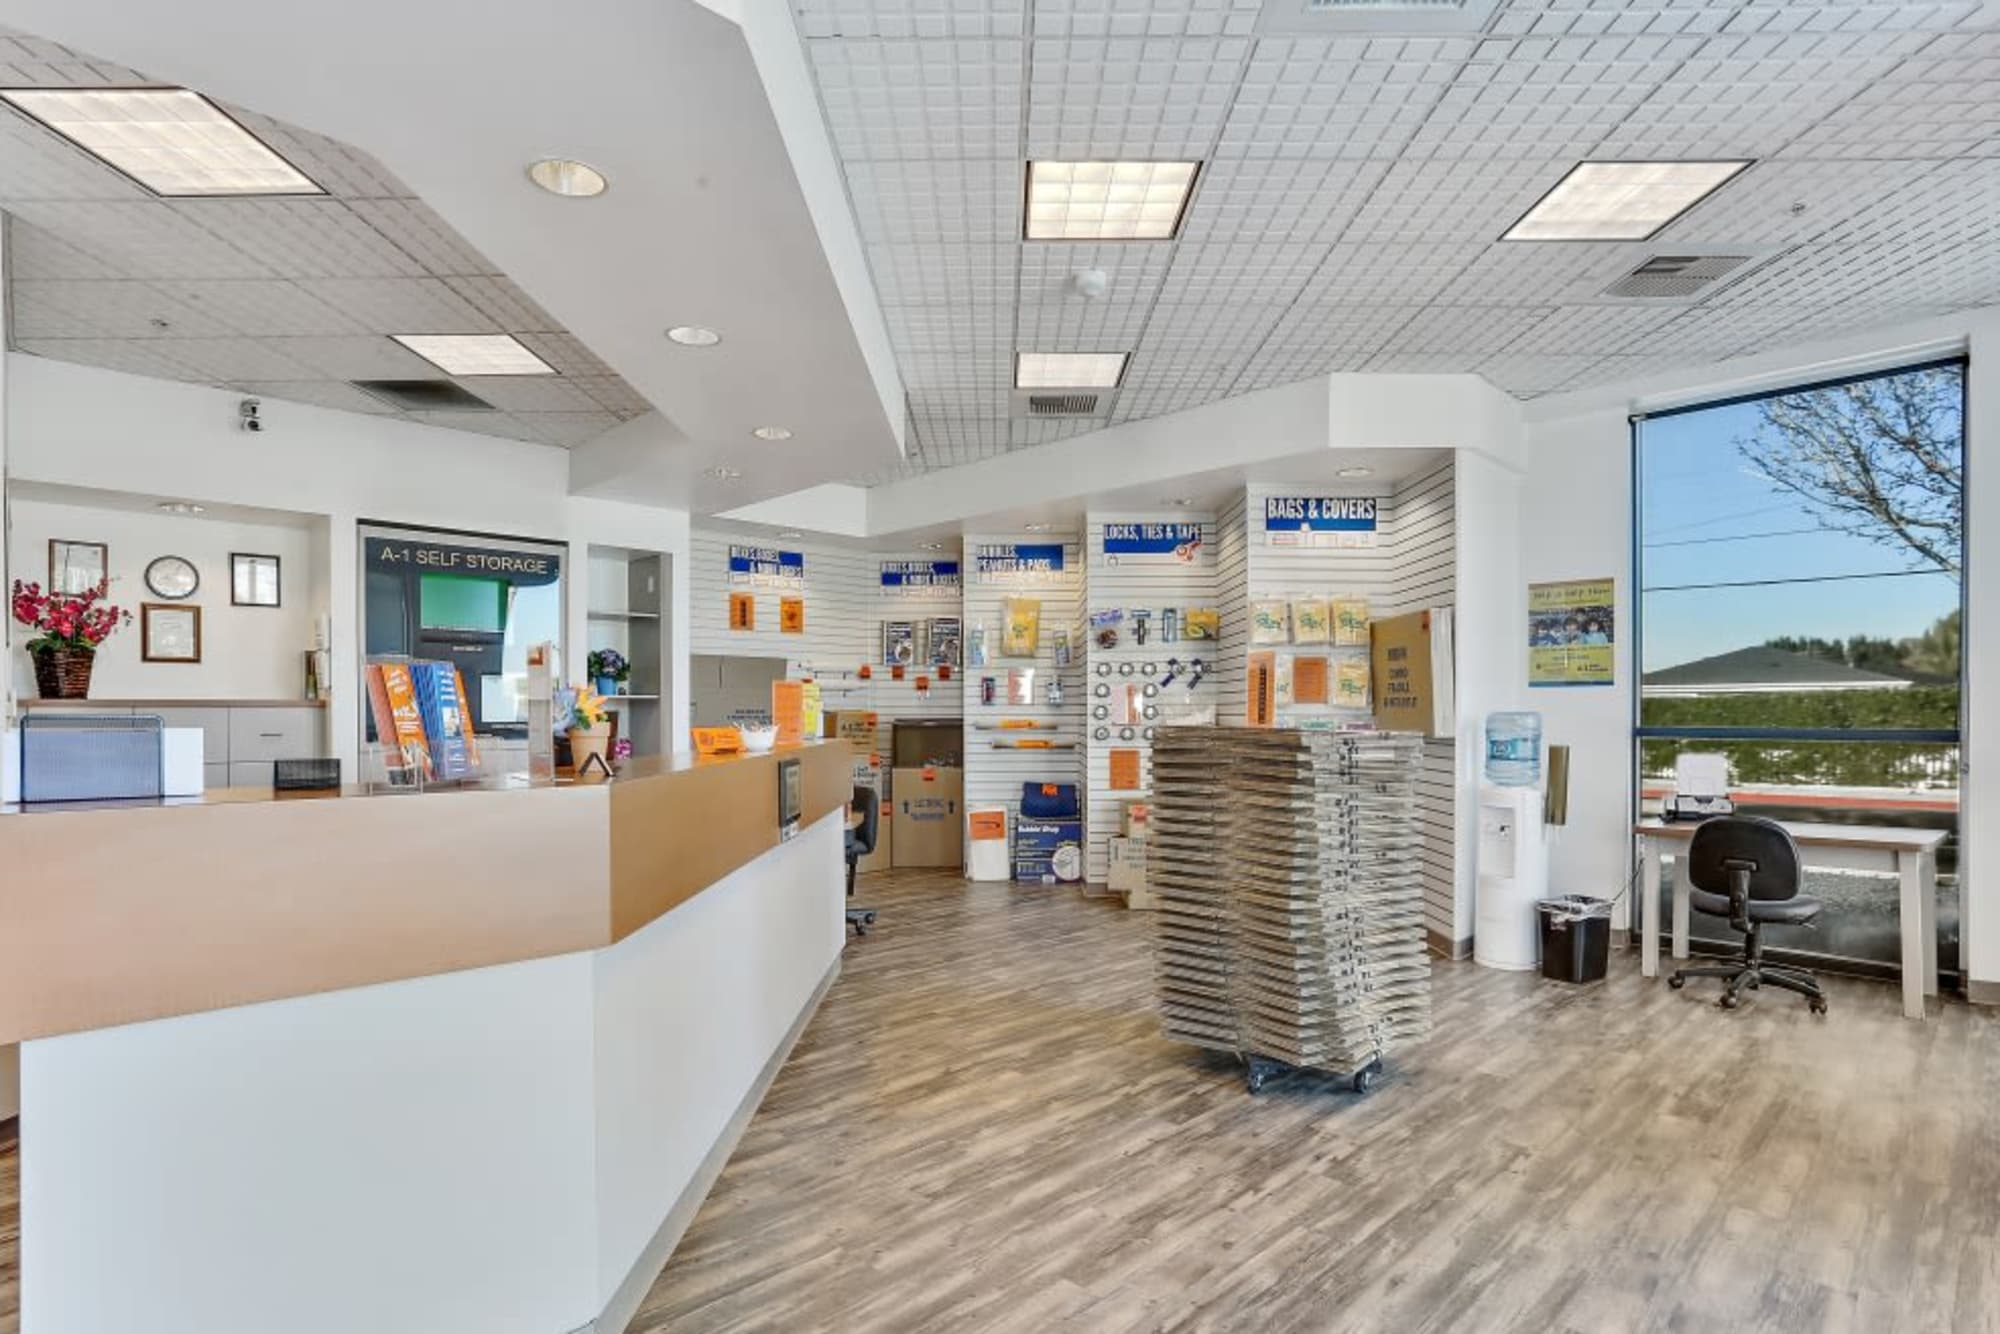 The front office at A-1 Self Storage in Paramount, California